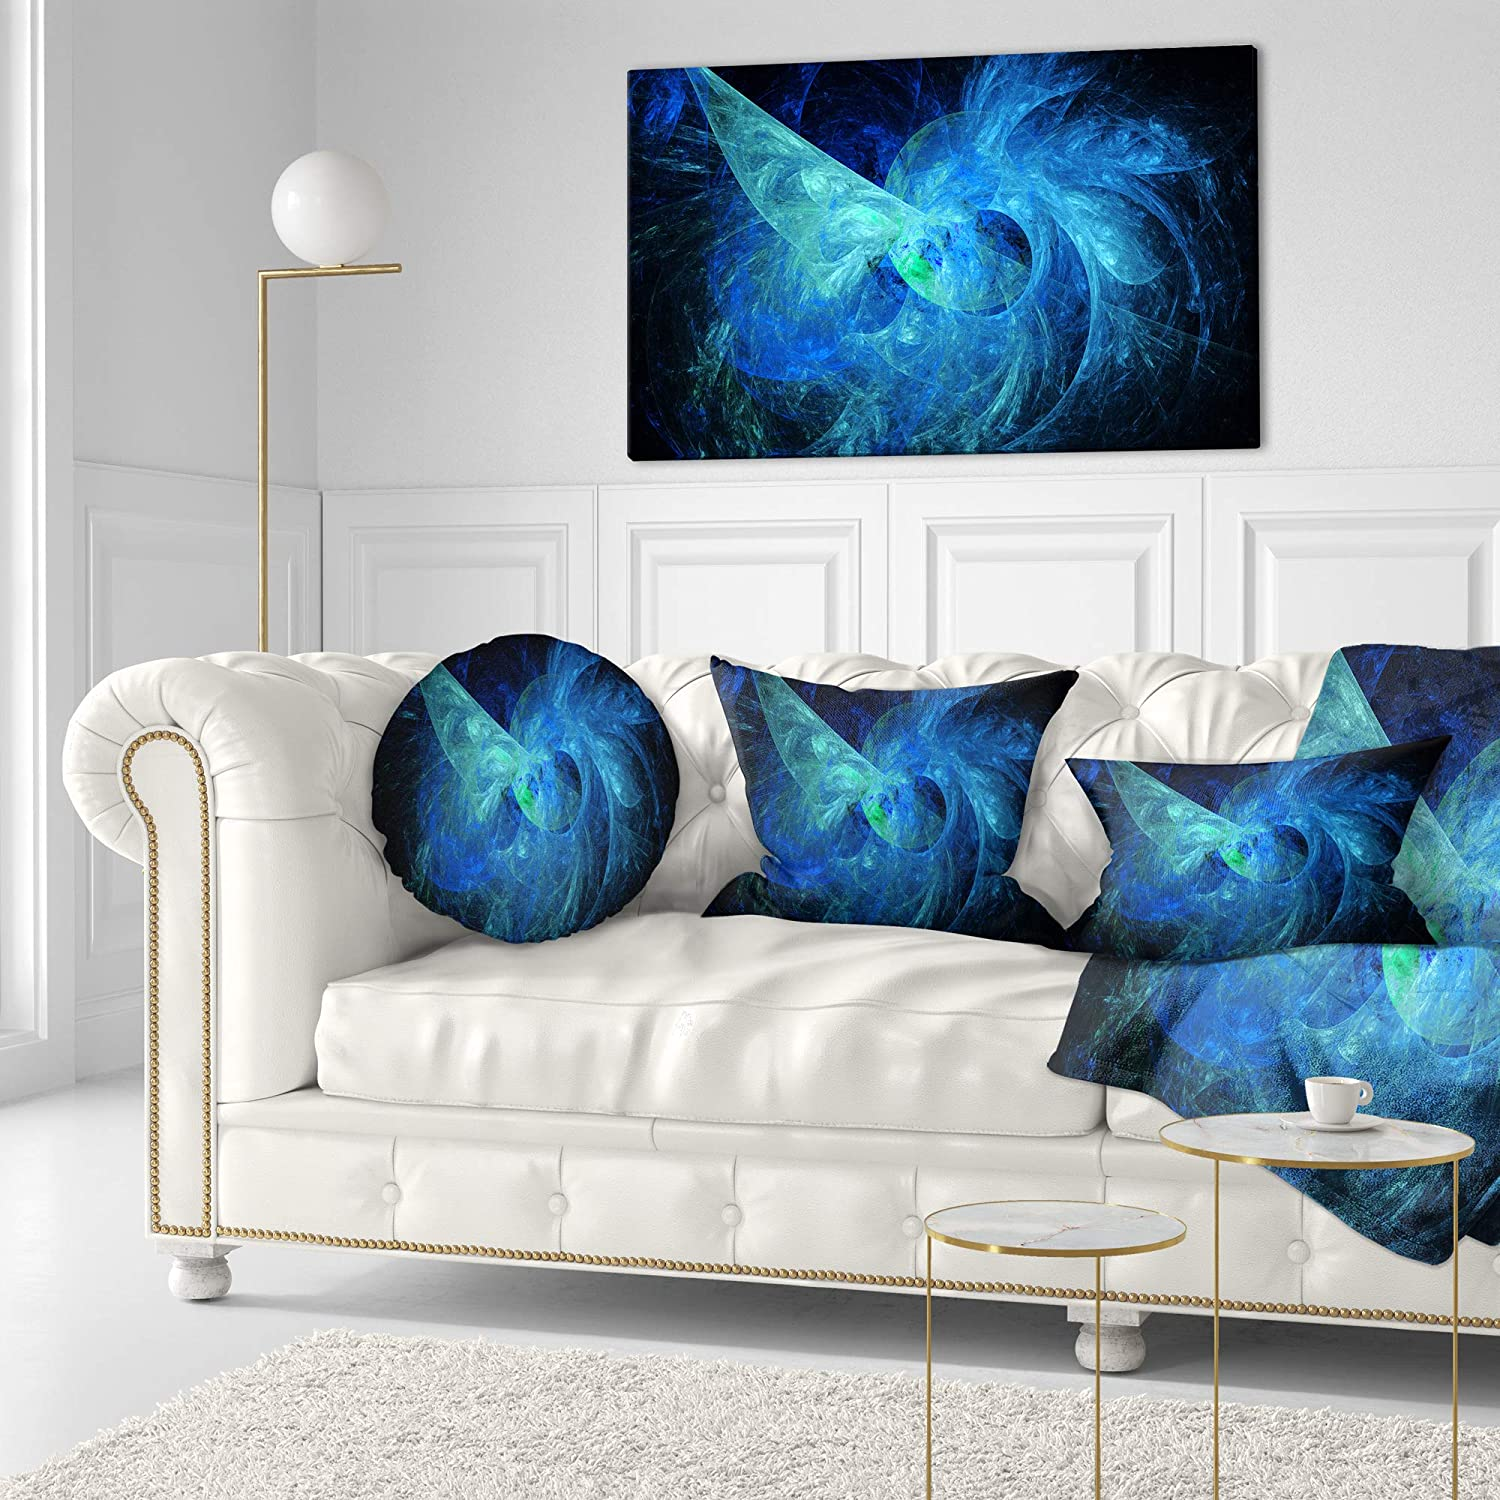 Sofa Throw Pillow 16 Designart CU15928-16-16-C Blue on Dark Fractal Illustration Abstract Round Cushion Cover for Living Room Insert Printed On Both Side